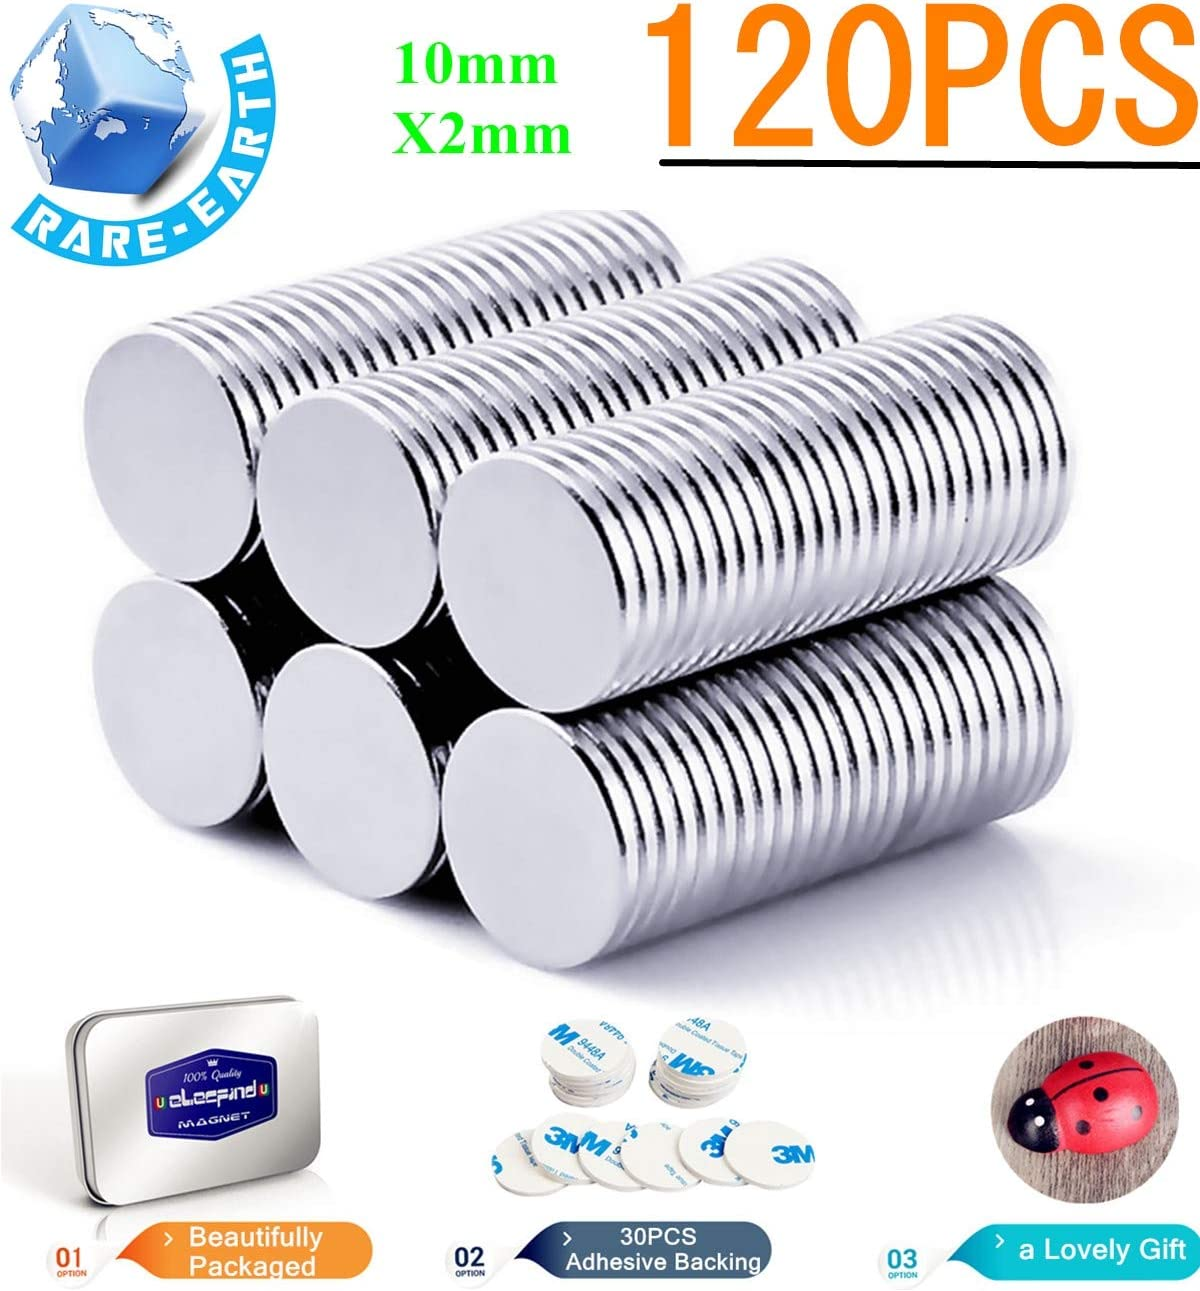 120PCS Round Refrigerator Magnets Disc10mmx2mm with Double Sided Adhesive 10mm 1mm Permanent,Fridge,DIY,Building,Scientific,Craft,Office Magnets